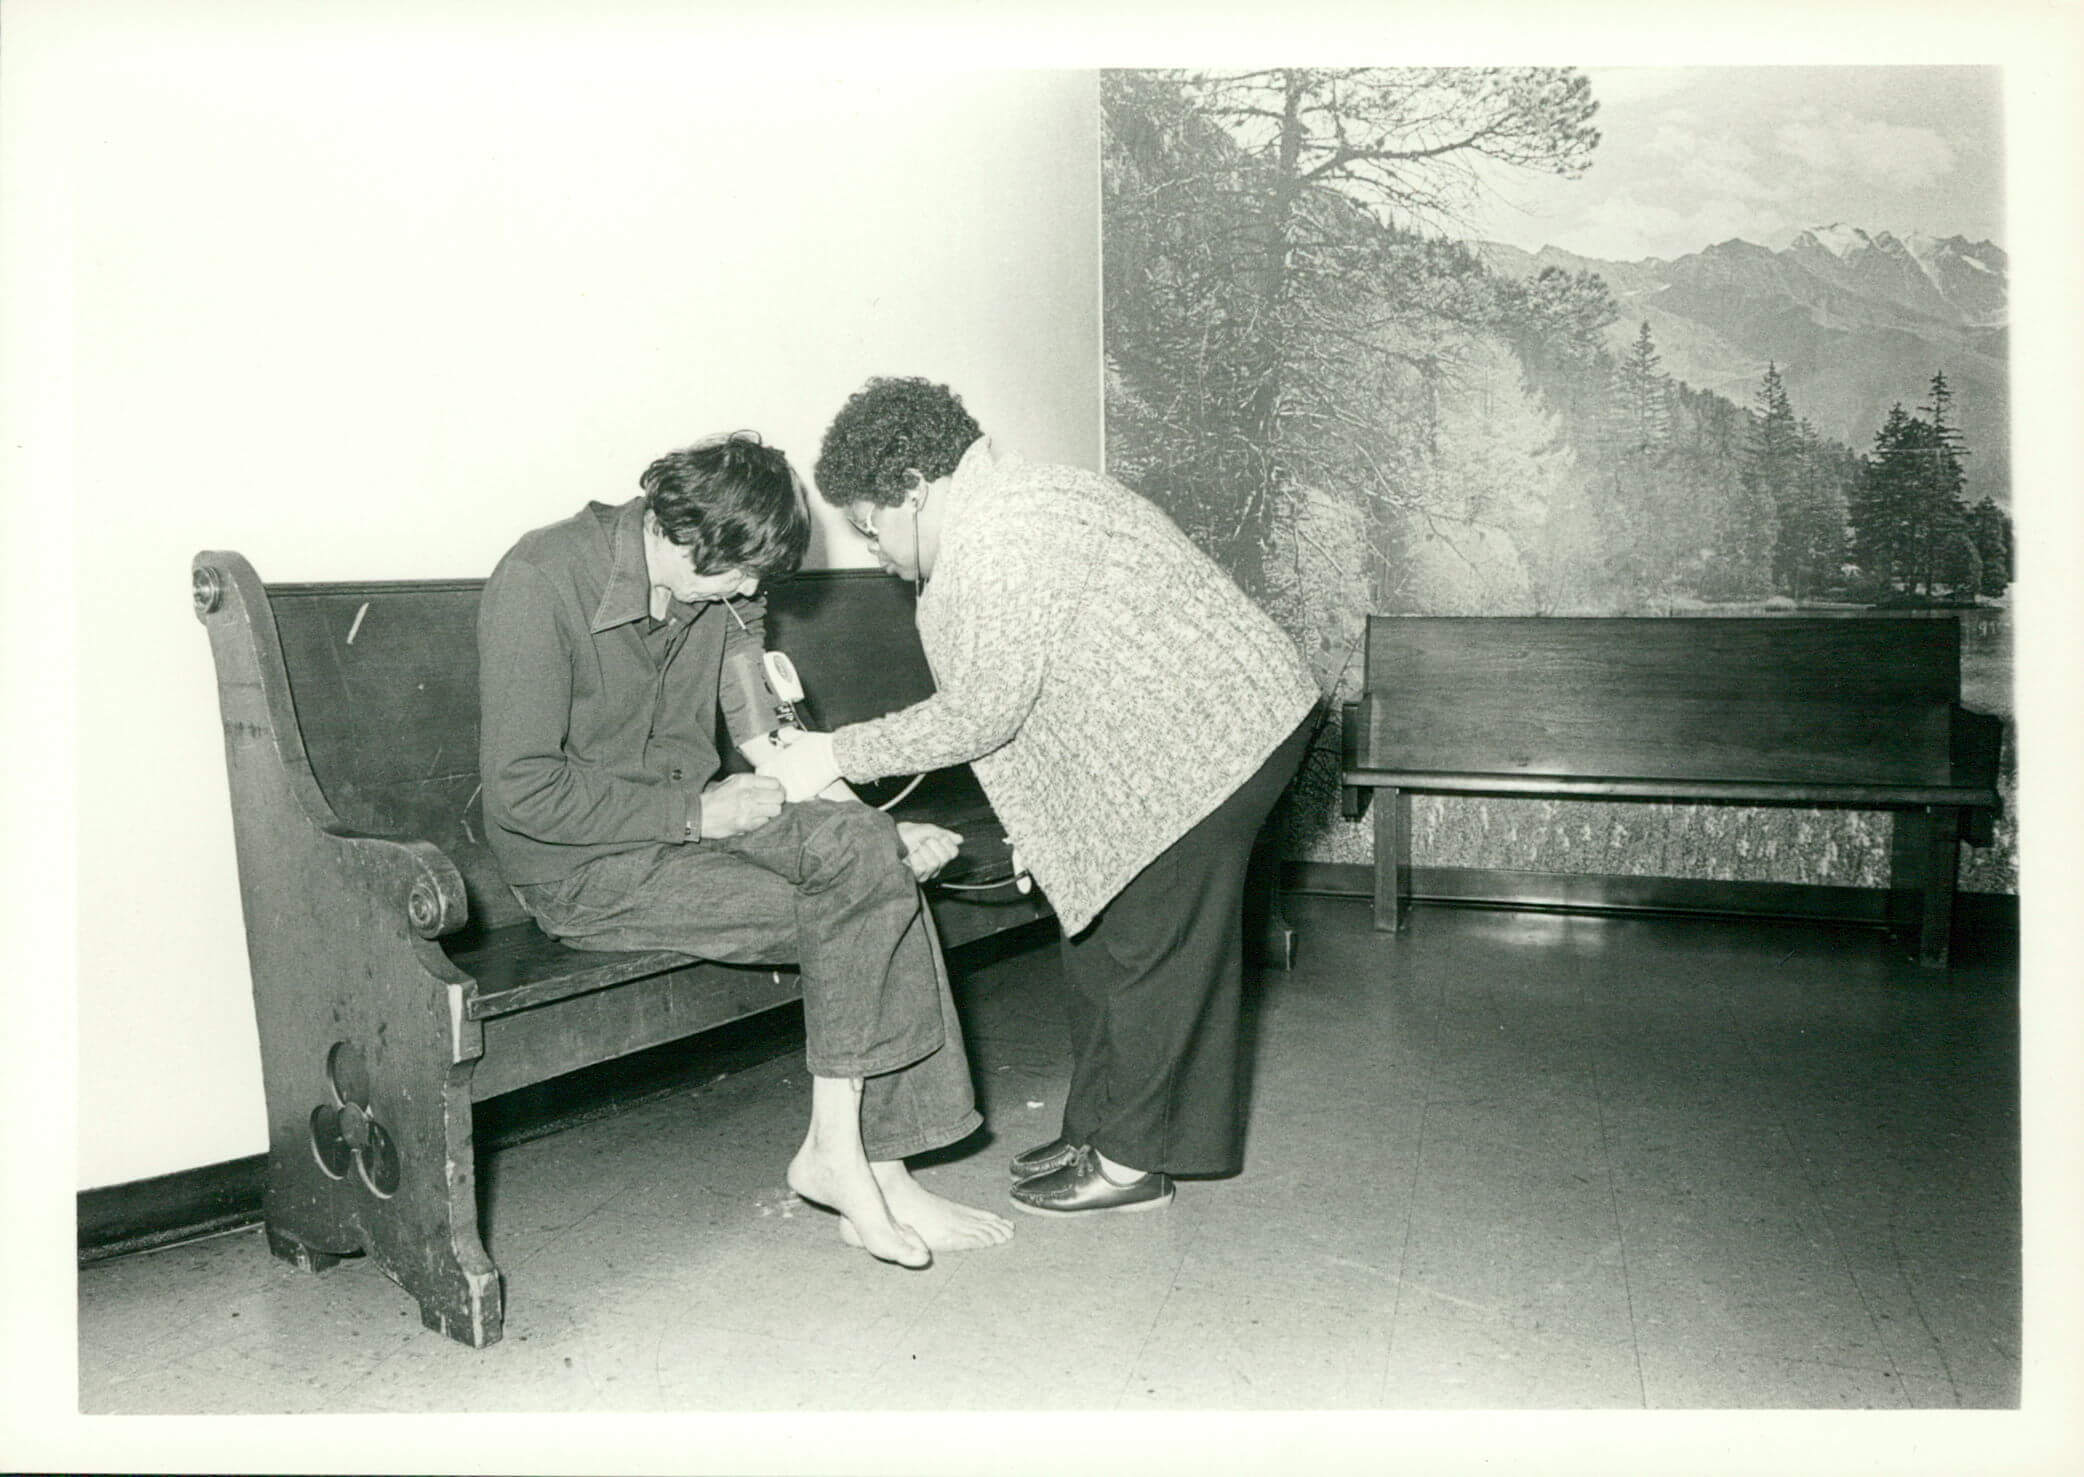 Medial working taking blood pressure of another woman in the 80s